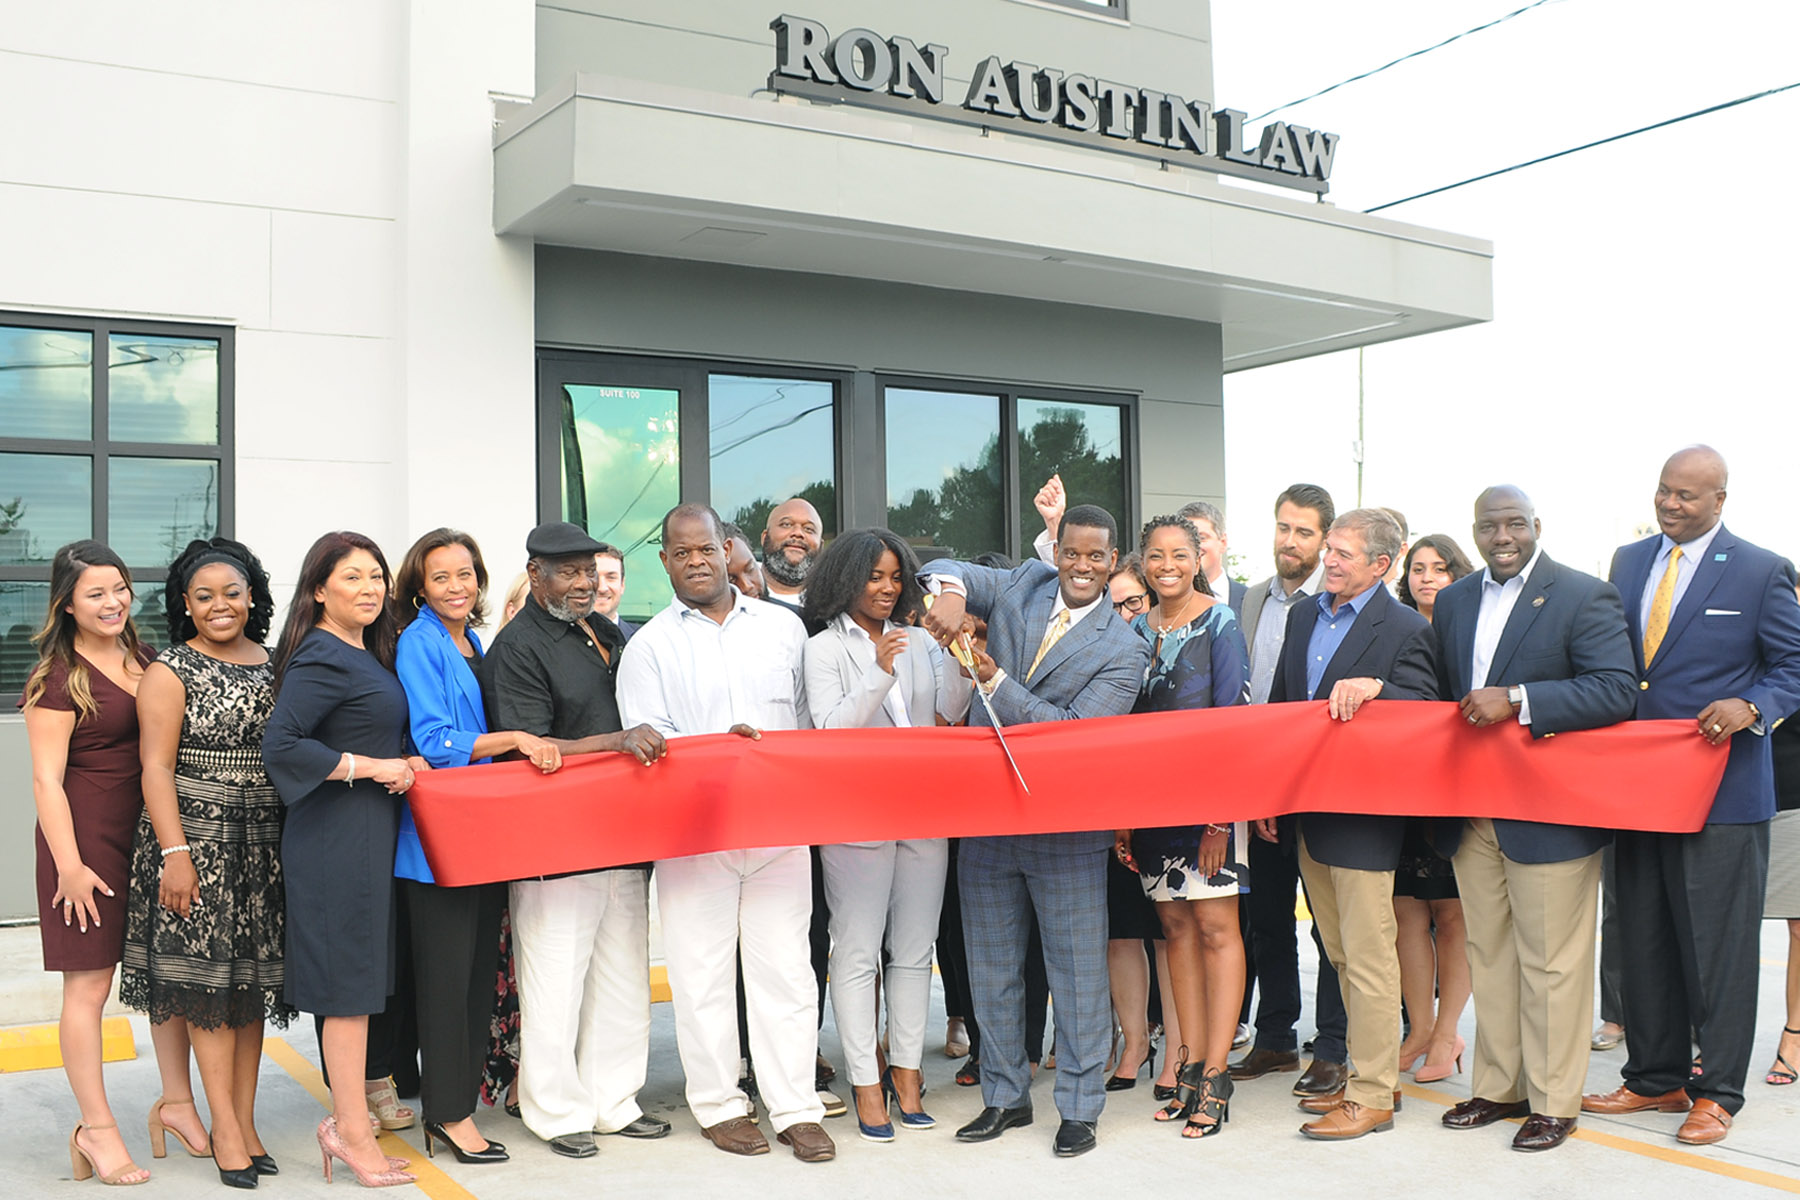 Greater New Orleans Area Law Office Grand Opening